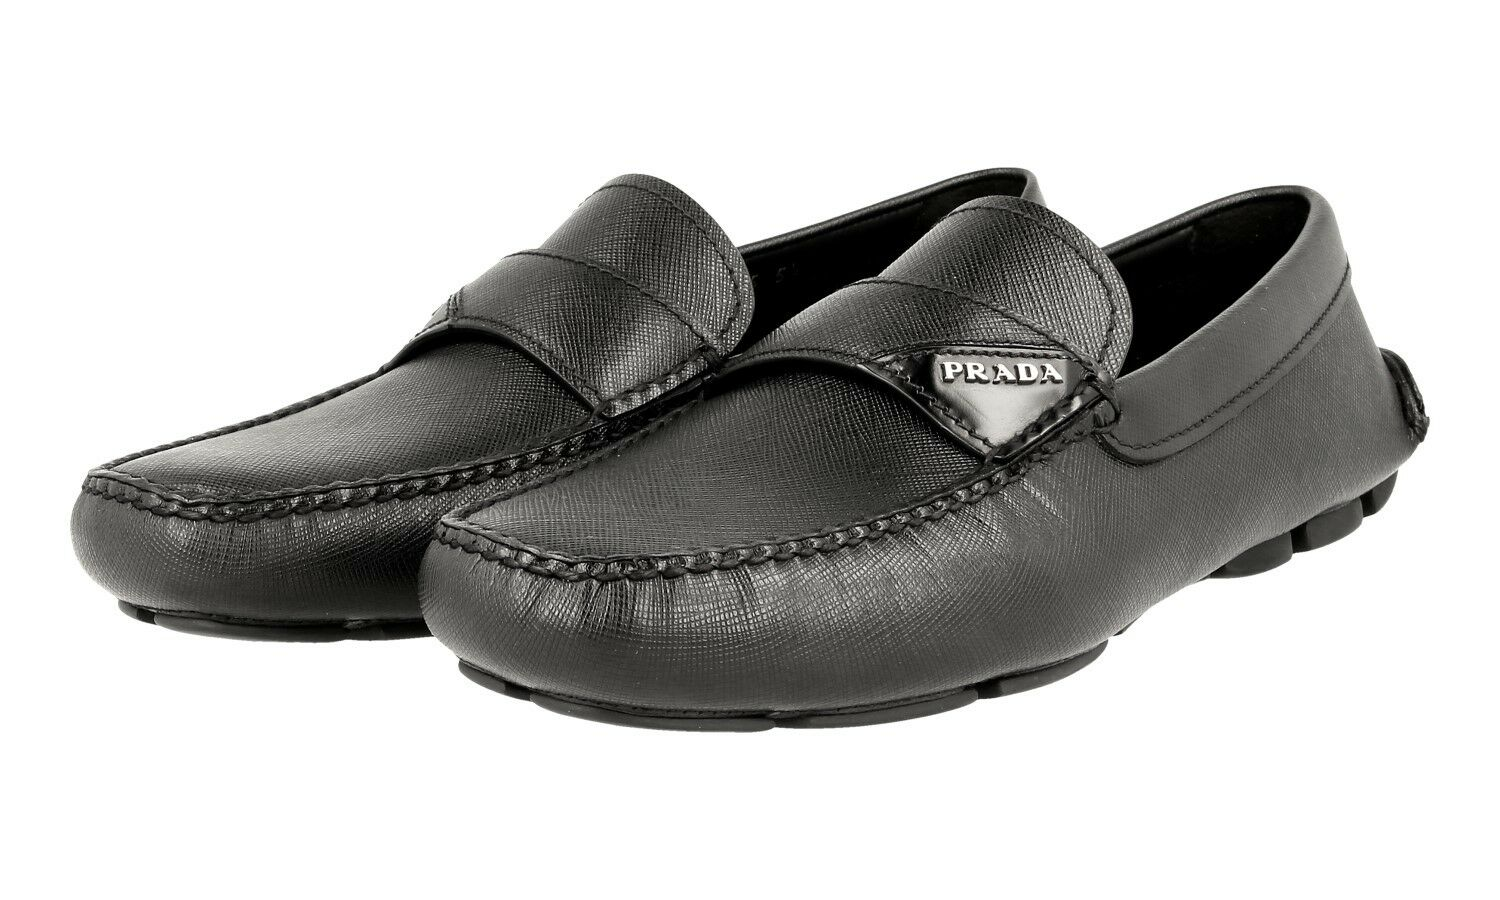 LUXURY PRADA SAFFIANO LOGO LOAFER SHOES 2DD125 BLACK NEW 5,5 39,5 40